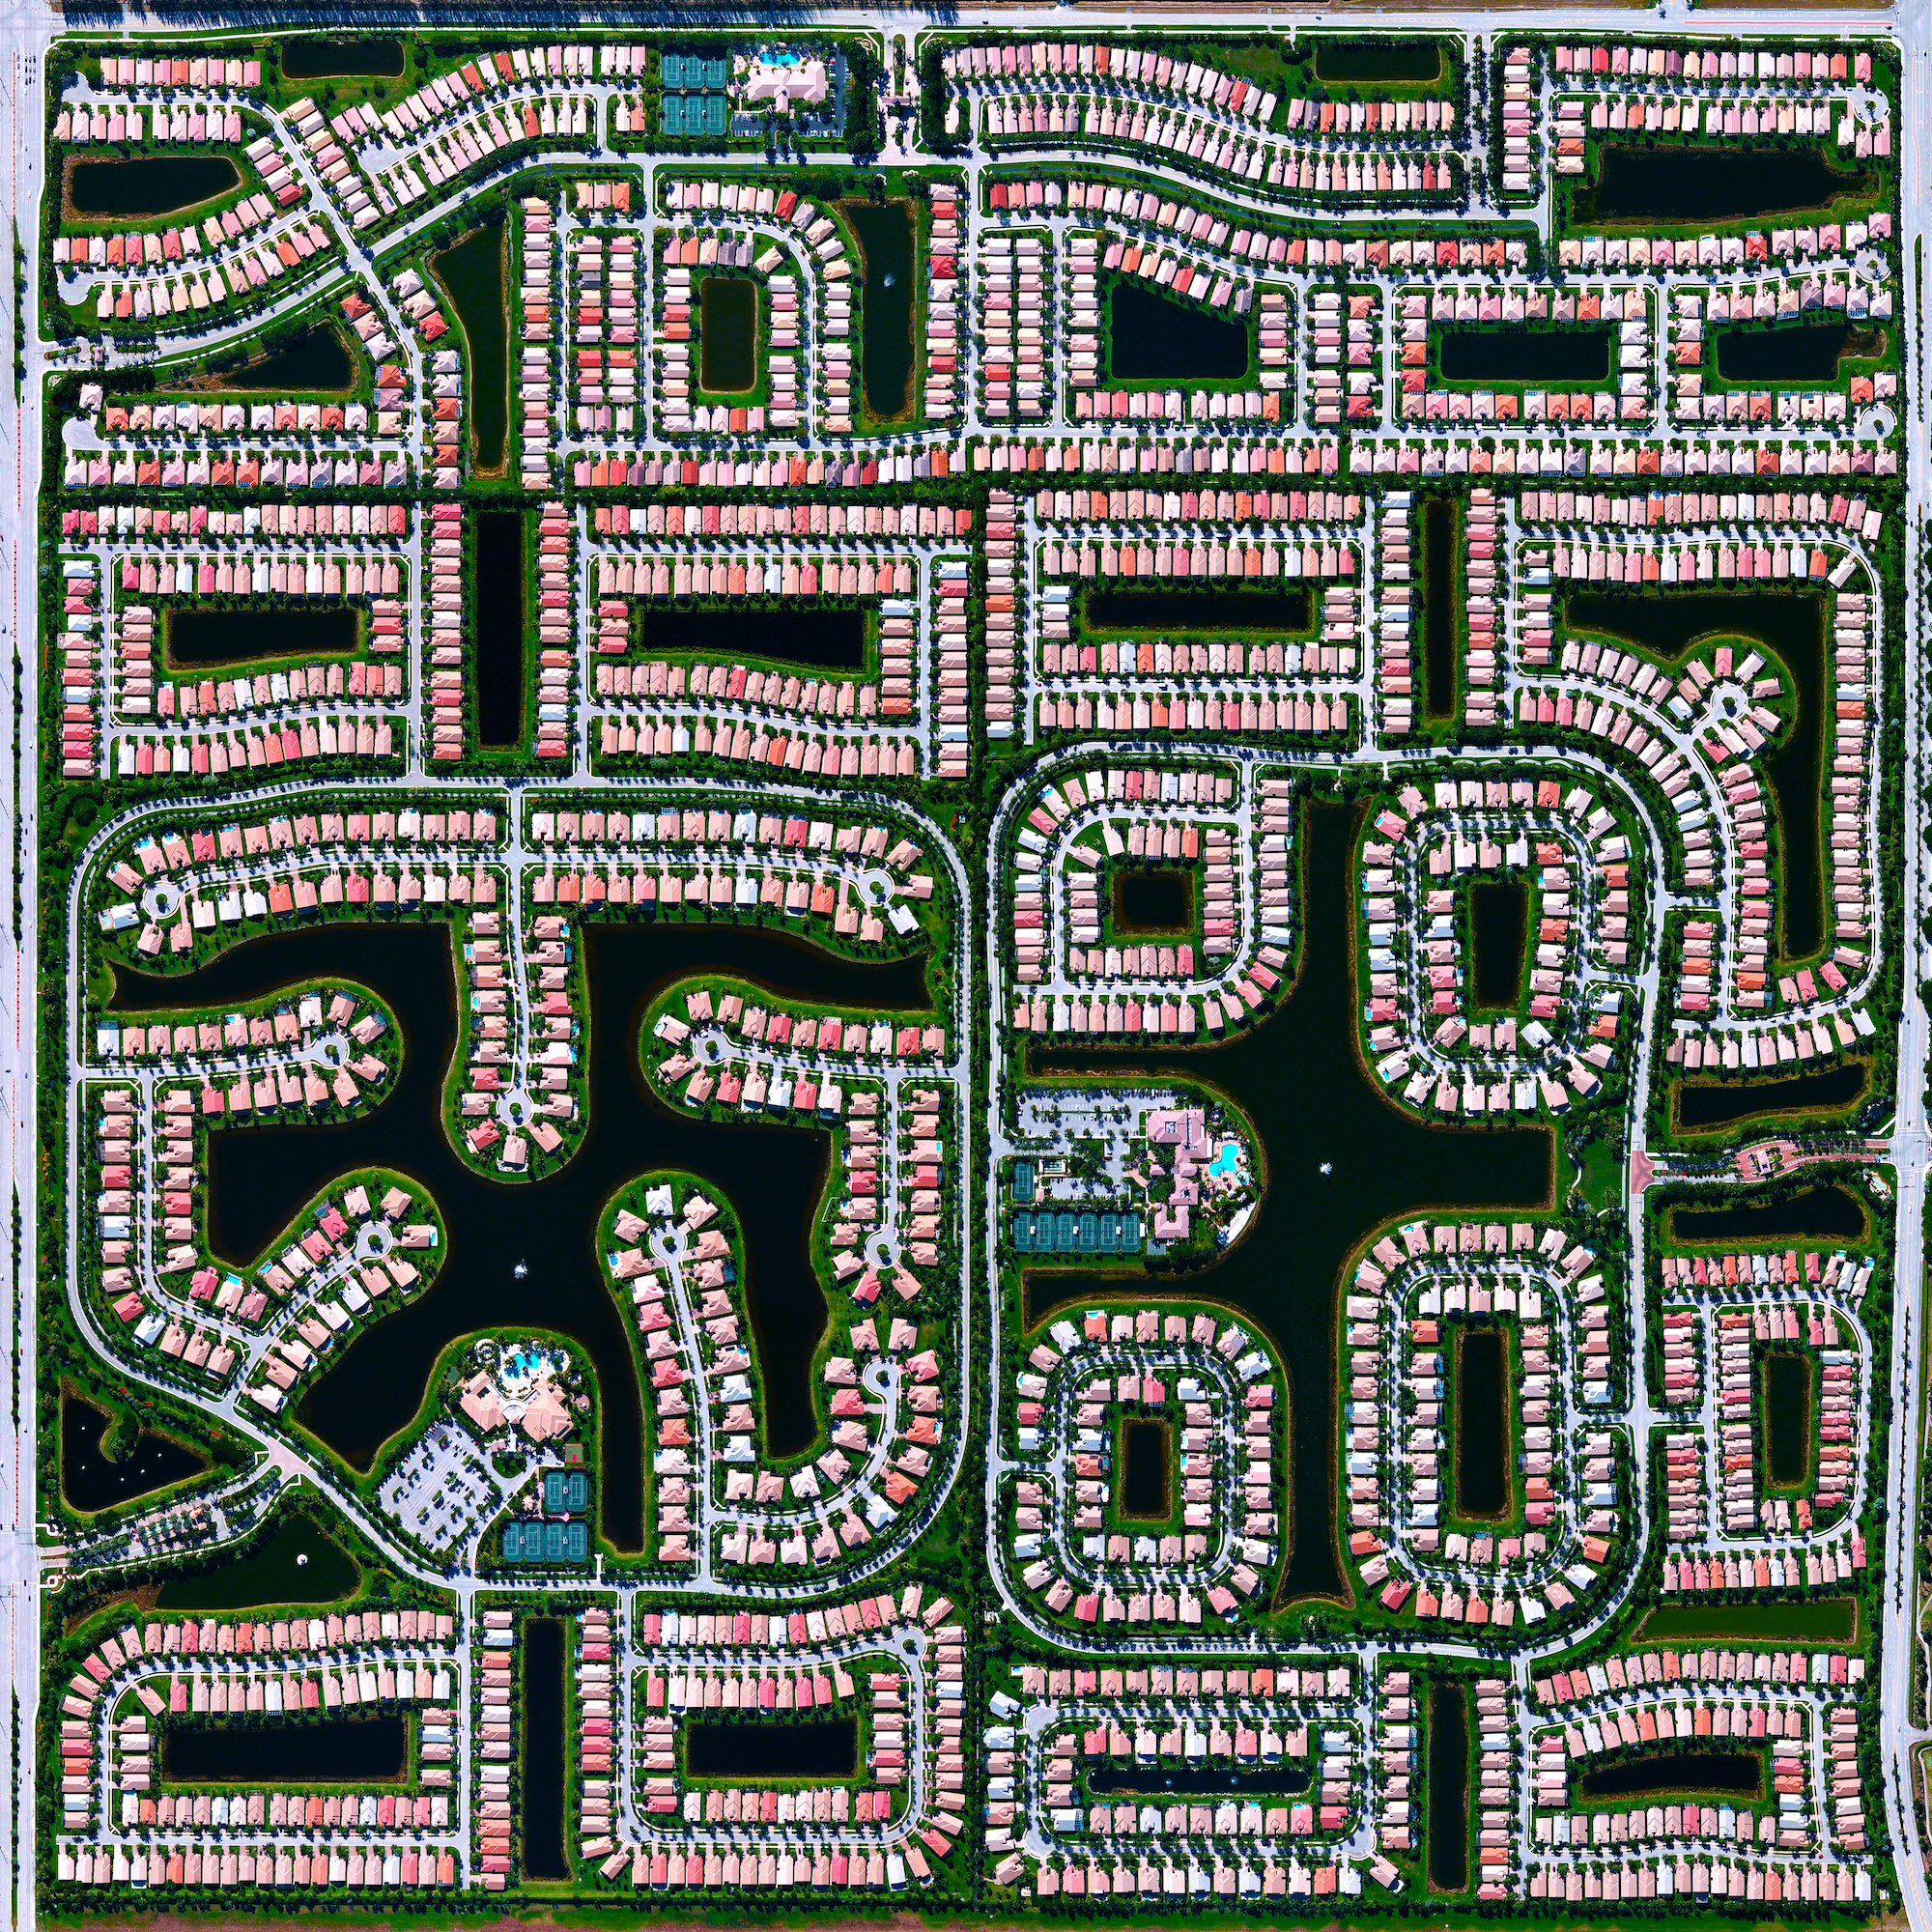 A residential community is seen here in Delray Beach, Florida, USA. Because many cities in the state of Florida contain master-planned communities, often built on top of waterways in the latter half of the twentieth century, there are a number of intricate designs such as this one that are visible from the Overview perspective.  26.475547616°, -80.156470216°